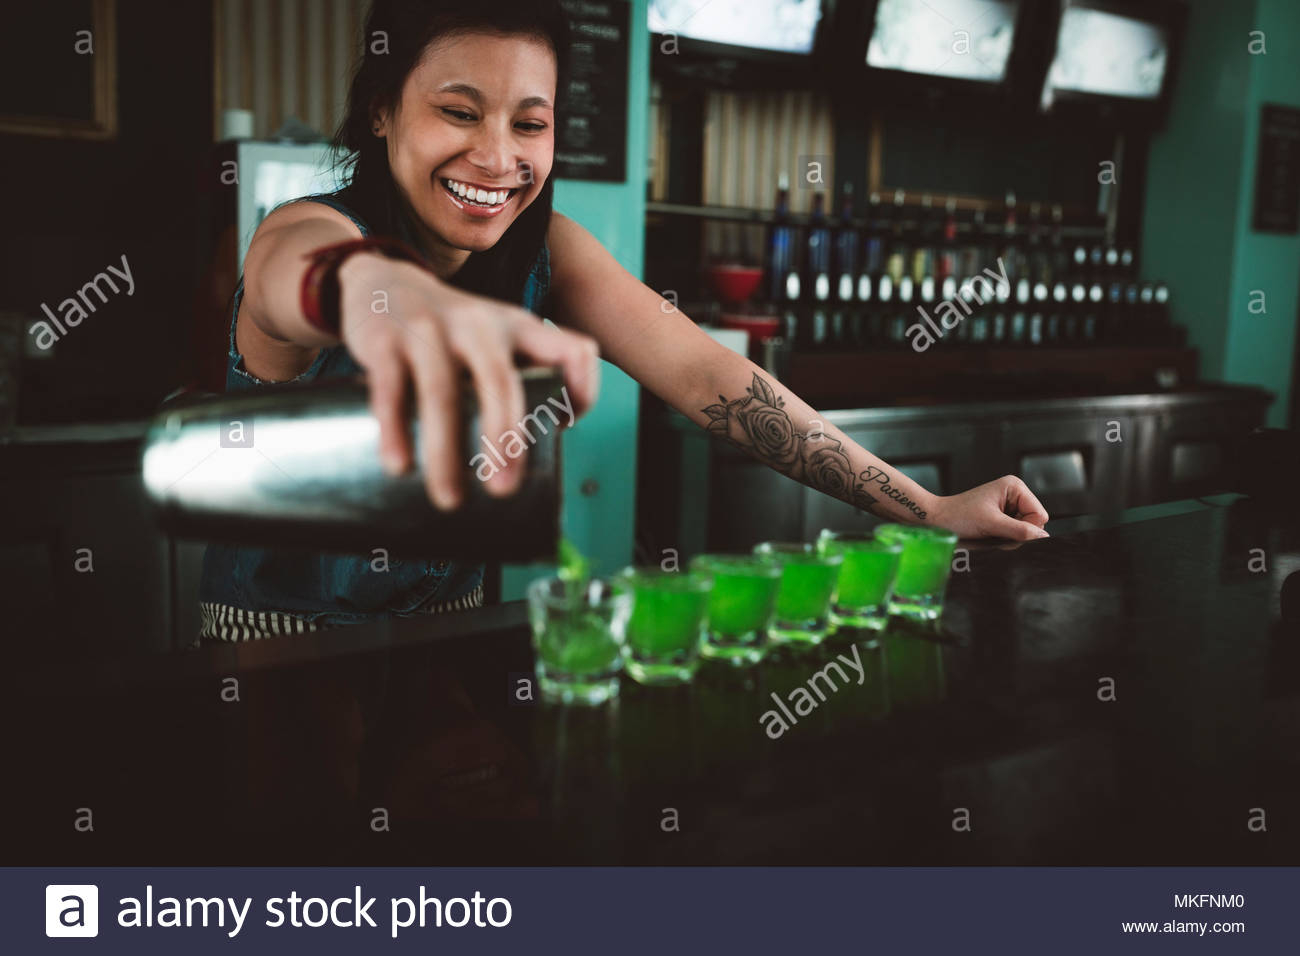 Smiling, happy young female millennial bartender pouring shots at bar - Stock Image